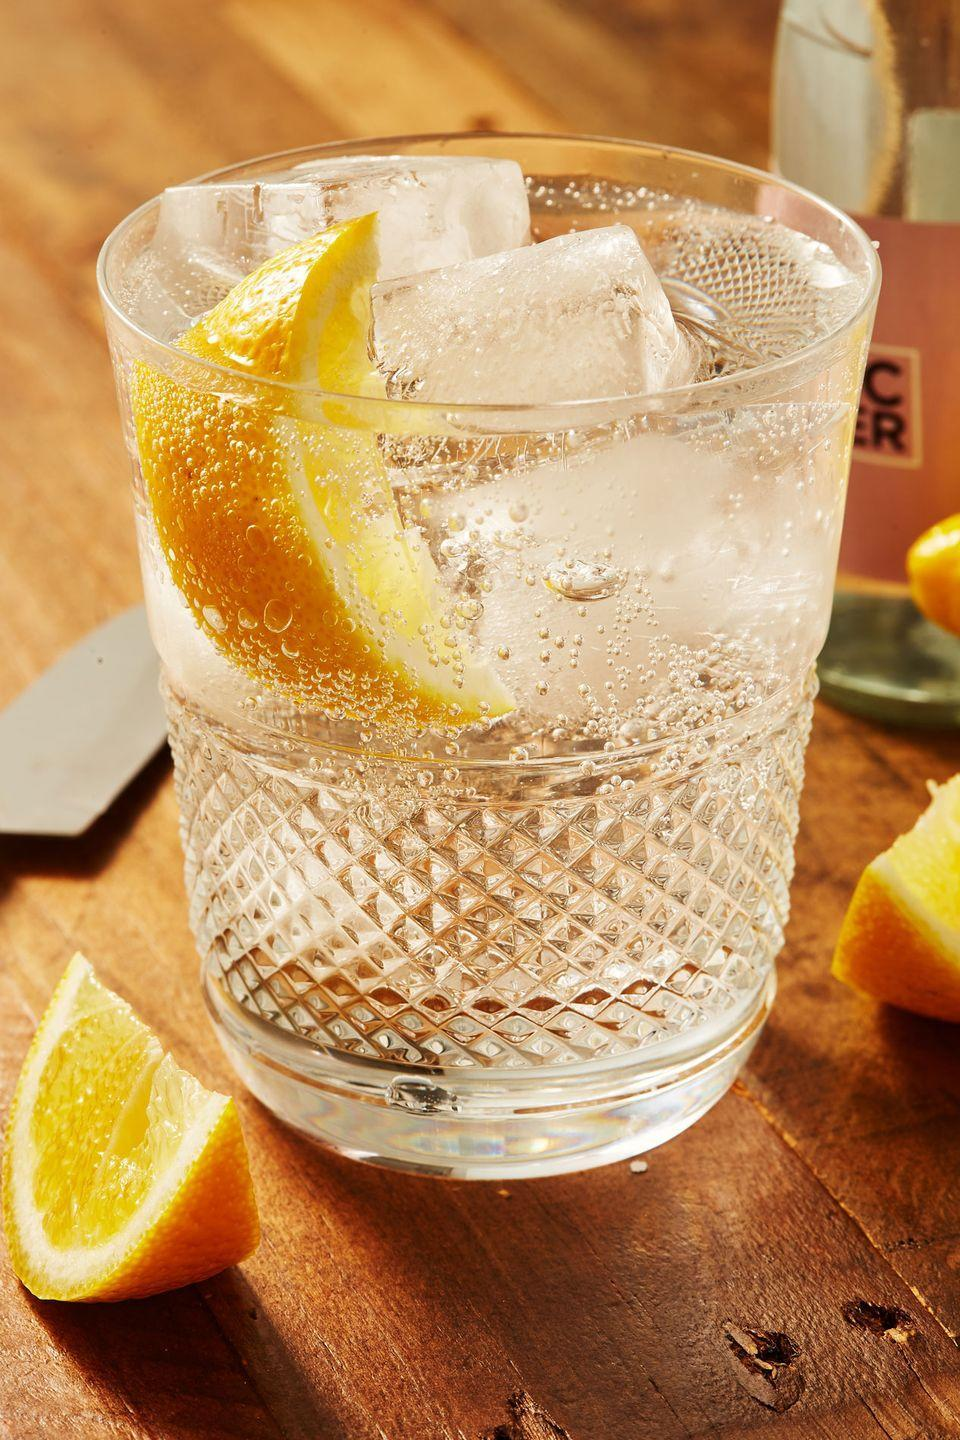 """<p>A drink so simple, you can focus on each other rather than mixing drinks. </p><p>Get the recipe from <a href=""""https://www.delish.com/cooking/recipe-ideas/a30535838/vodka-tonic-recipe/"""" rel=""""nofollow noopener"""" target=""""_blank"""" data-ylk=""""slk:Delish"""" class=""""link rapid-noclick-resp"""">Delish</a>.</p>"""